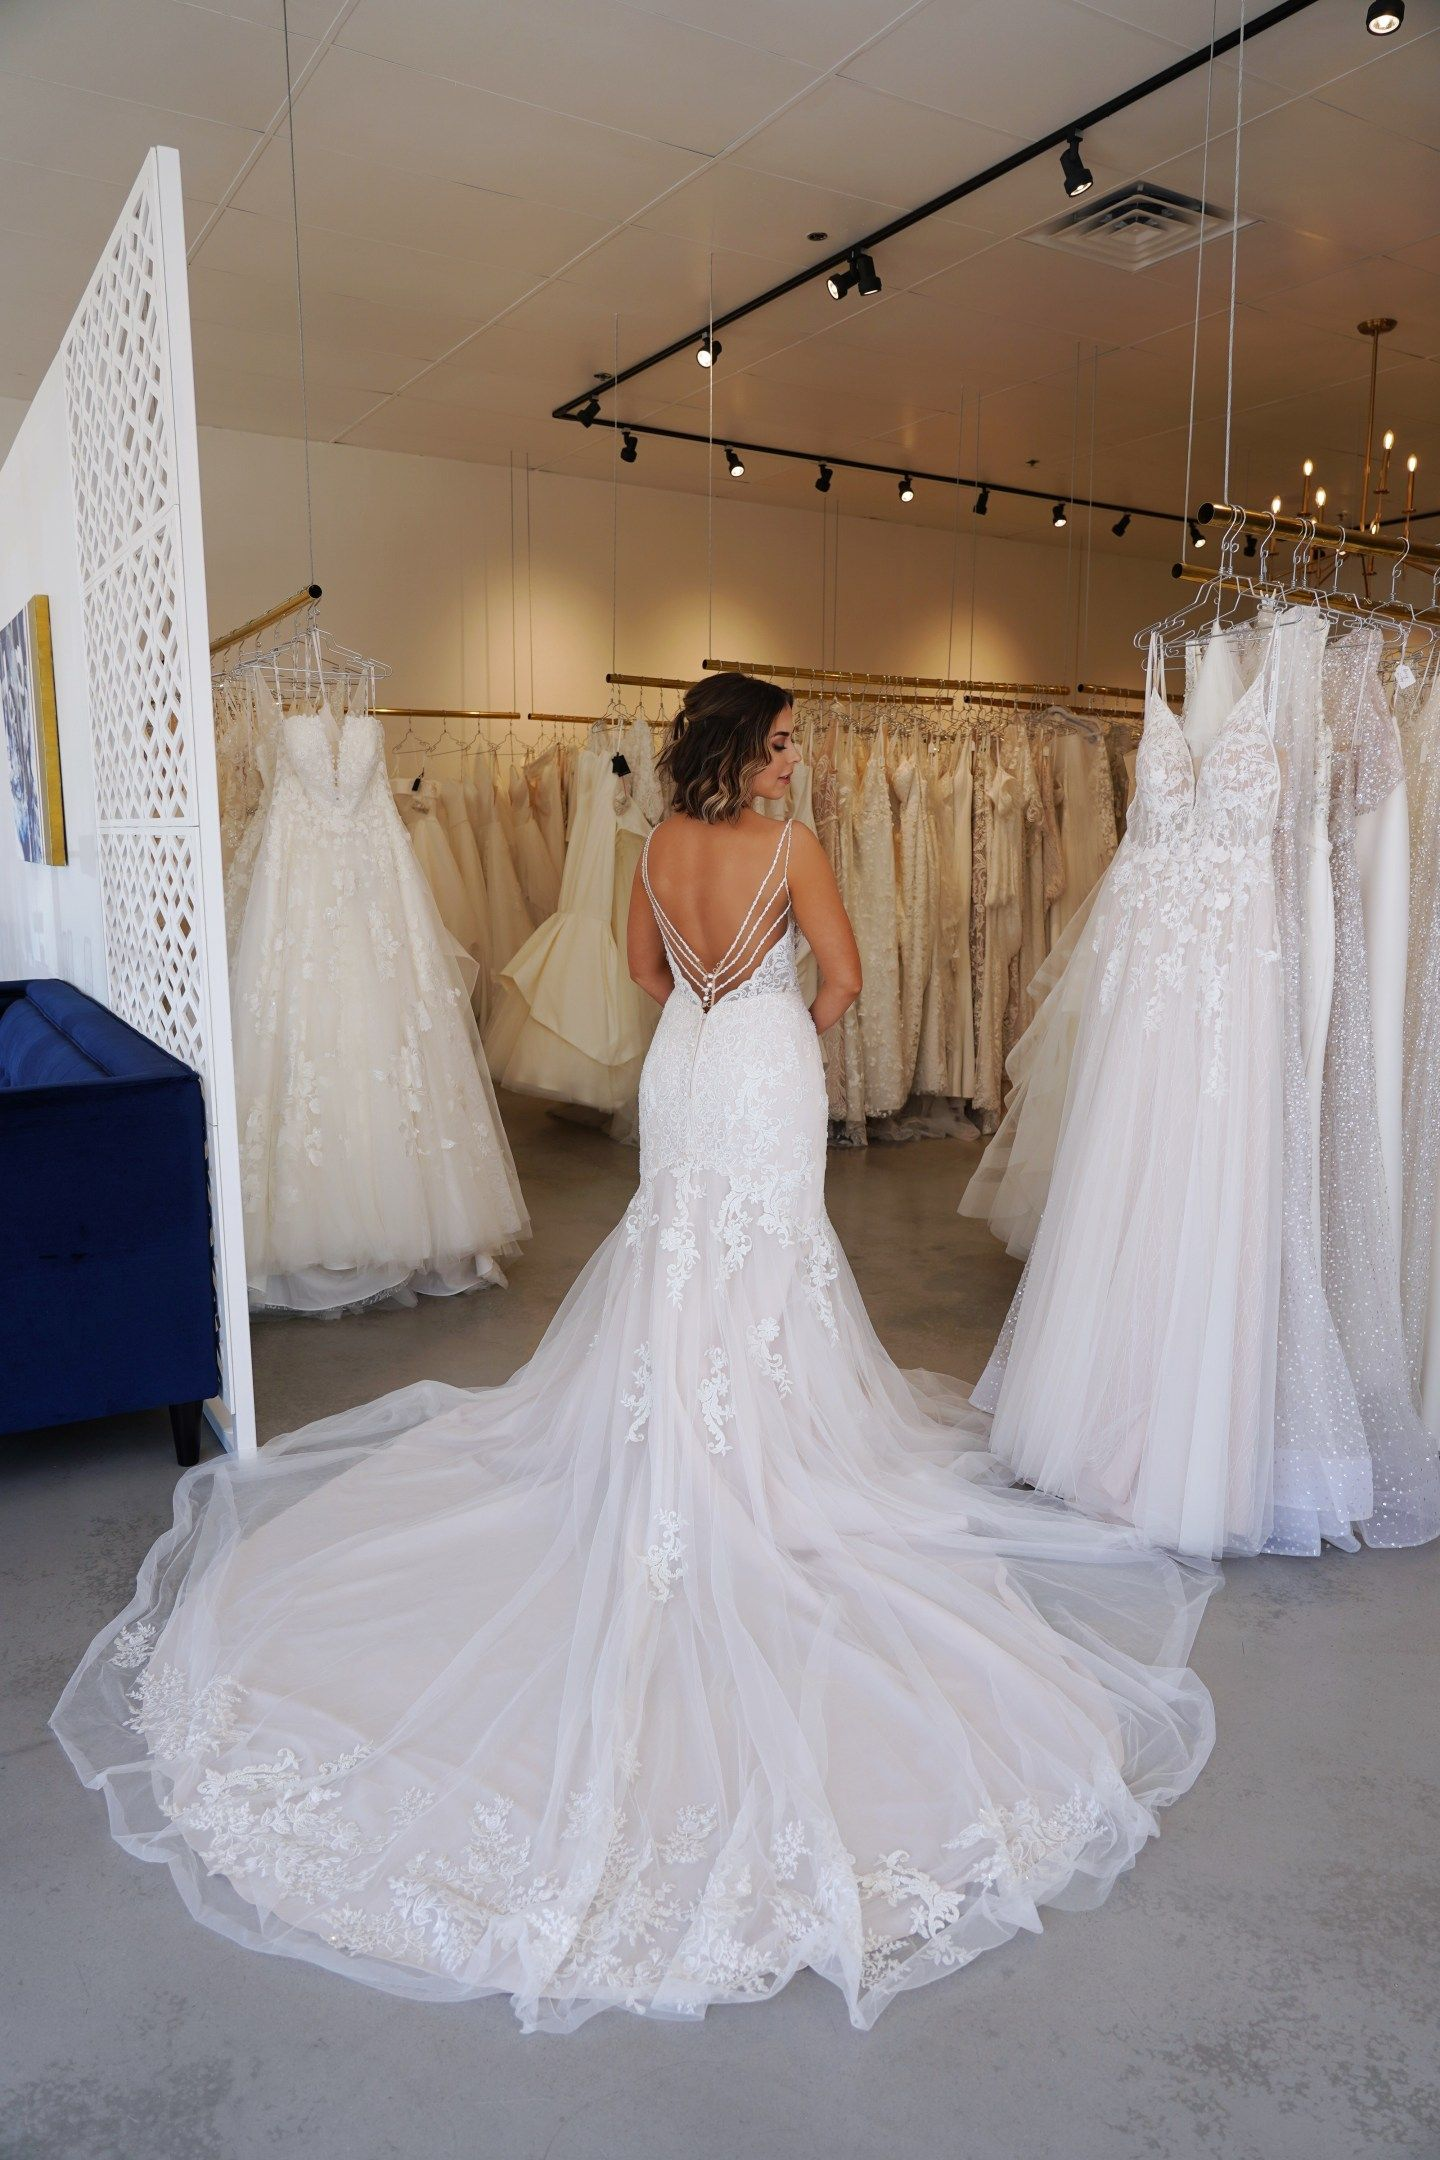 The Ultimate Wedding Dress Color Guide Shades Of White Fit And Flare Wedding Dress Wedding Dresses Fitted Wedding Dress [ 1504 x 1128 Pixel ]